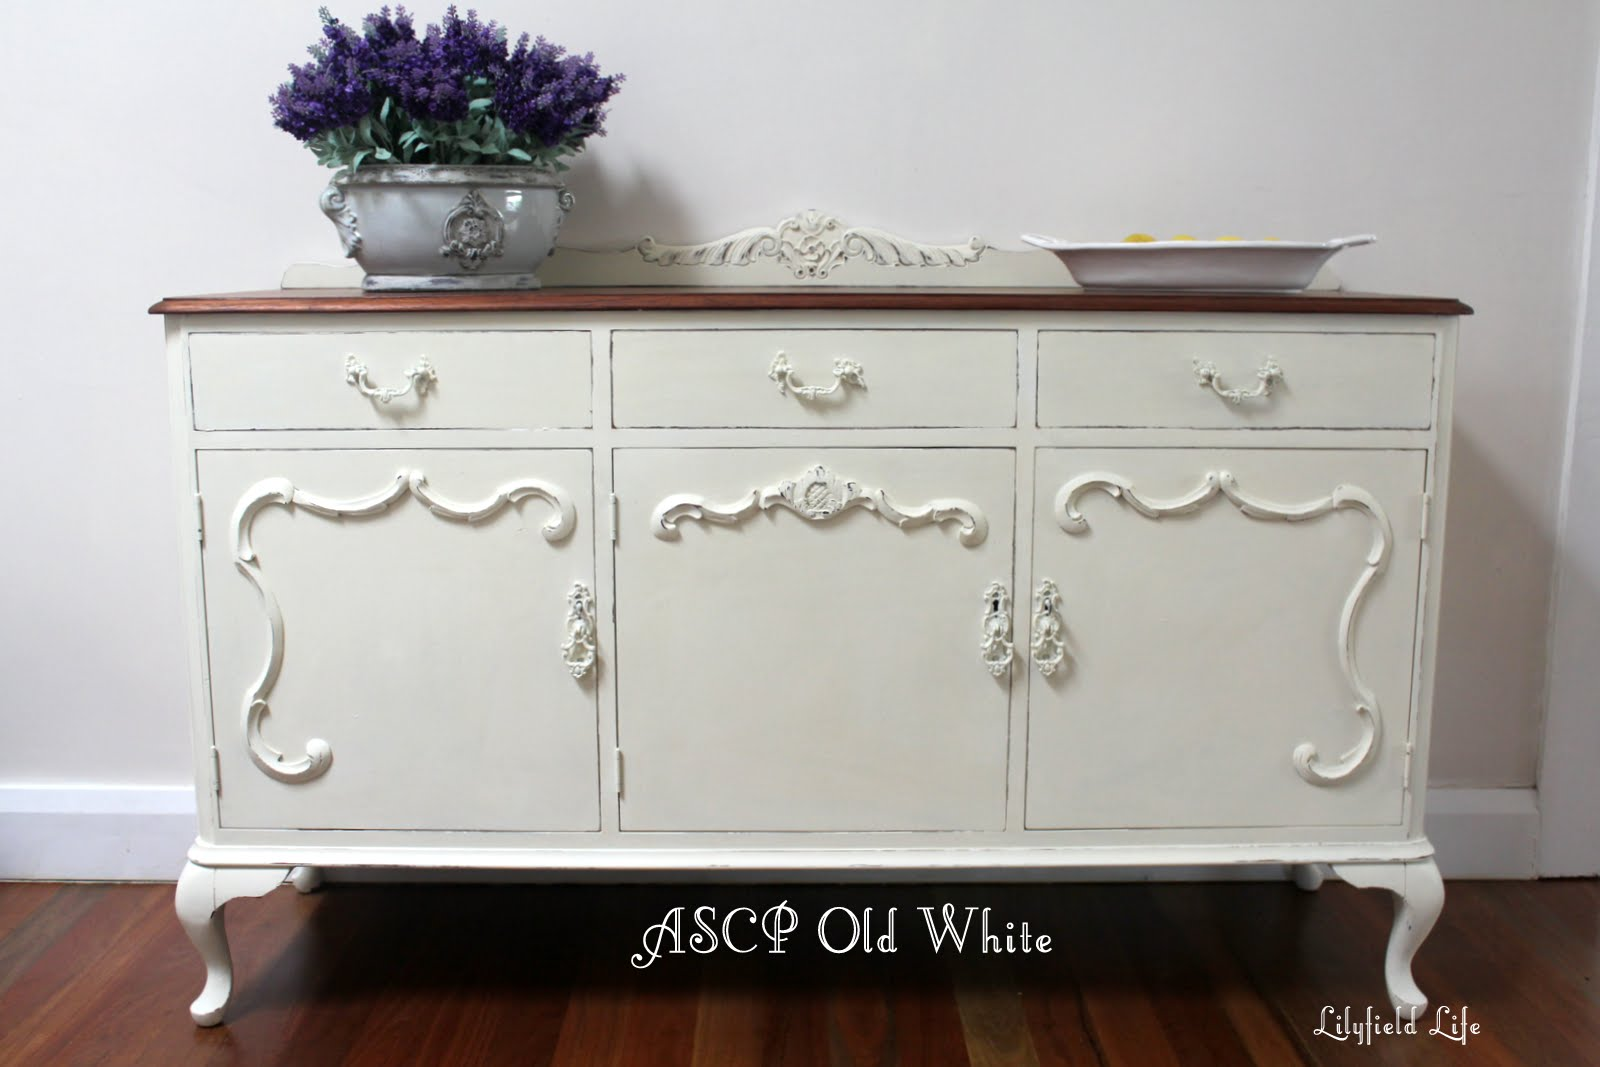 Lilyfield Life Ascp Old White Annie Sloan Chalk Paint